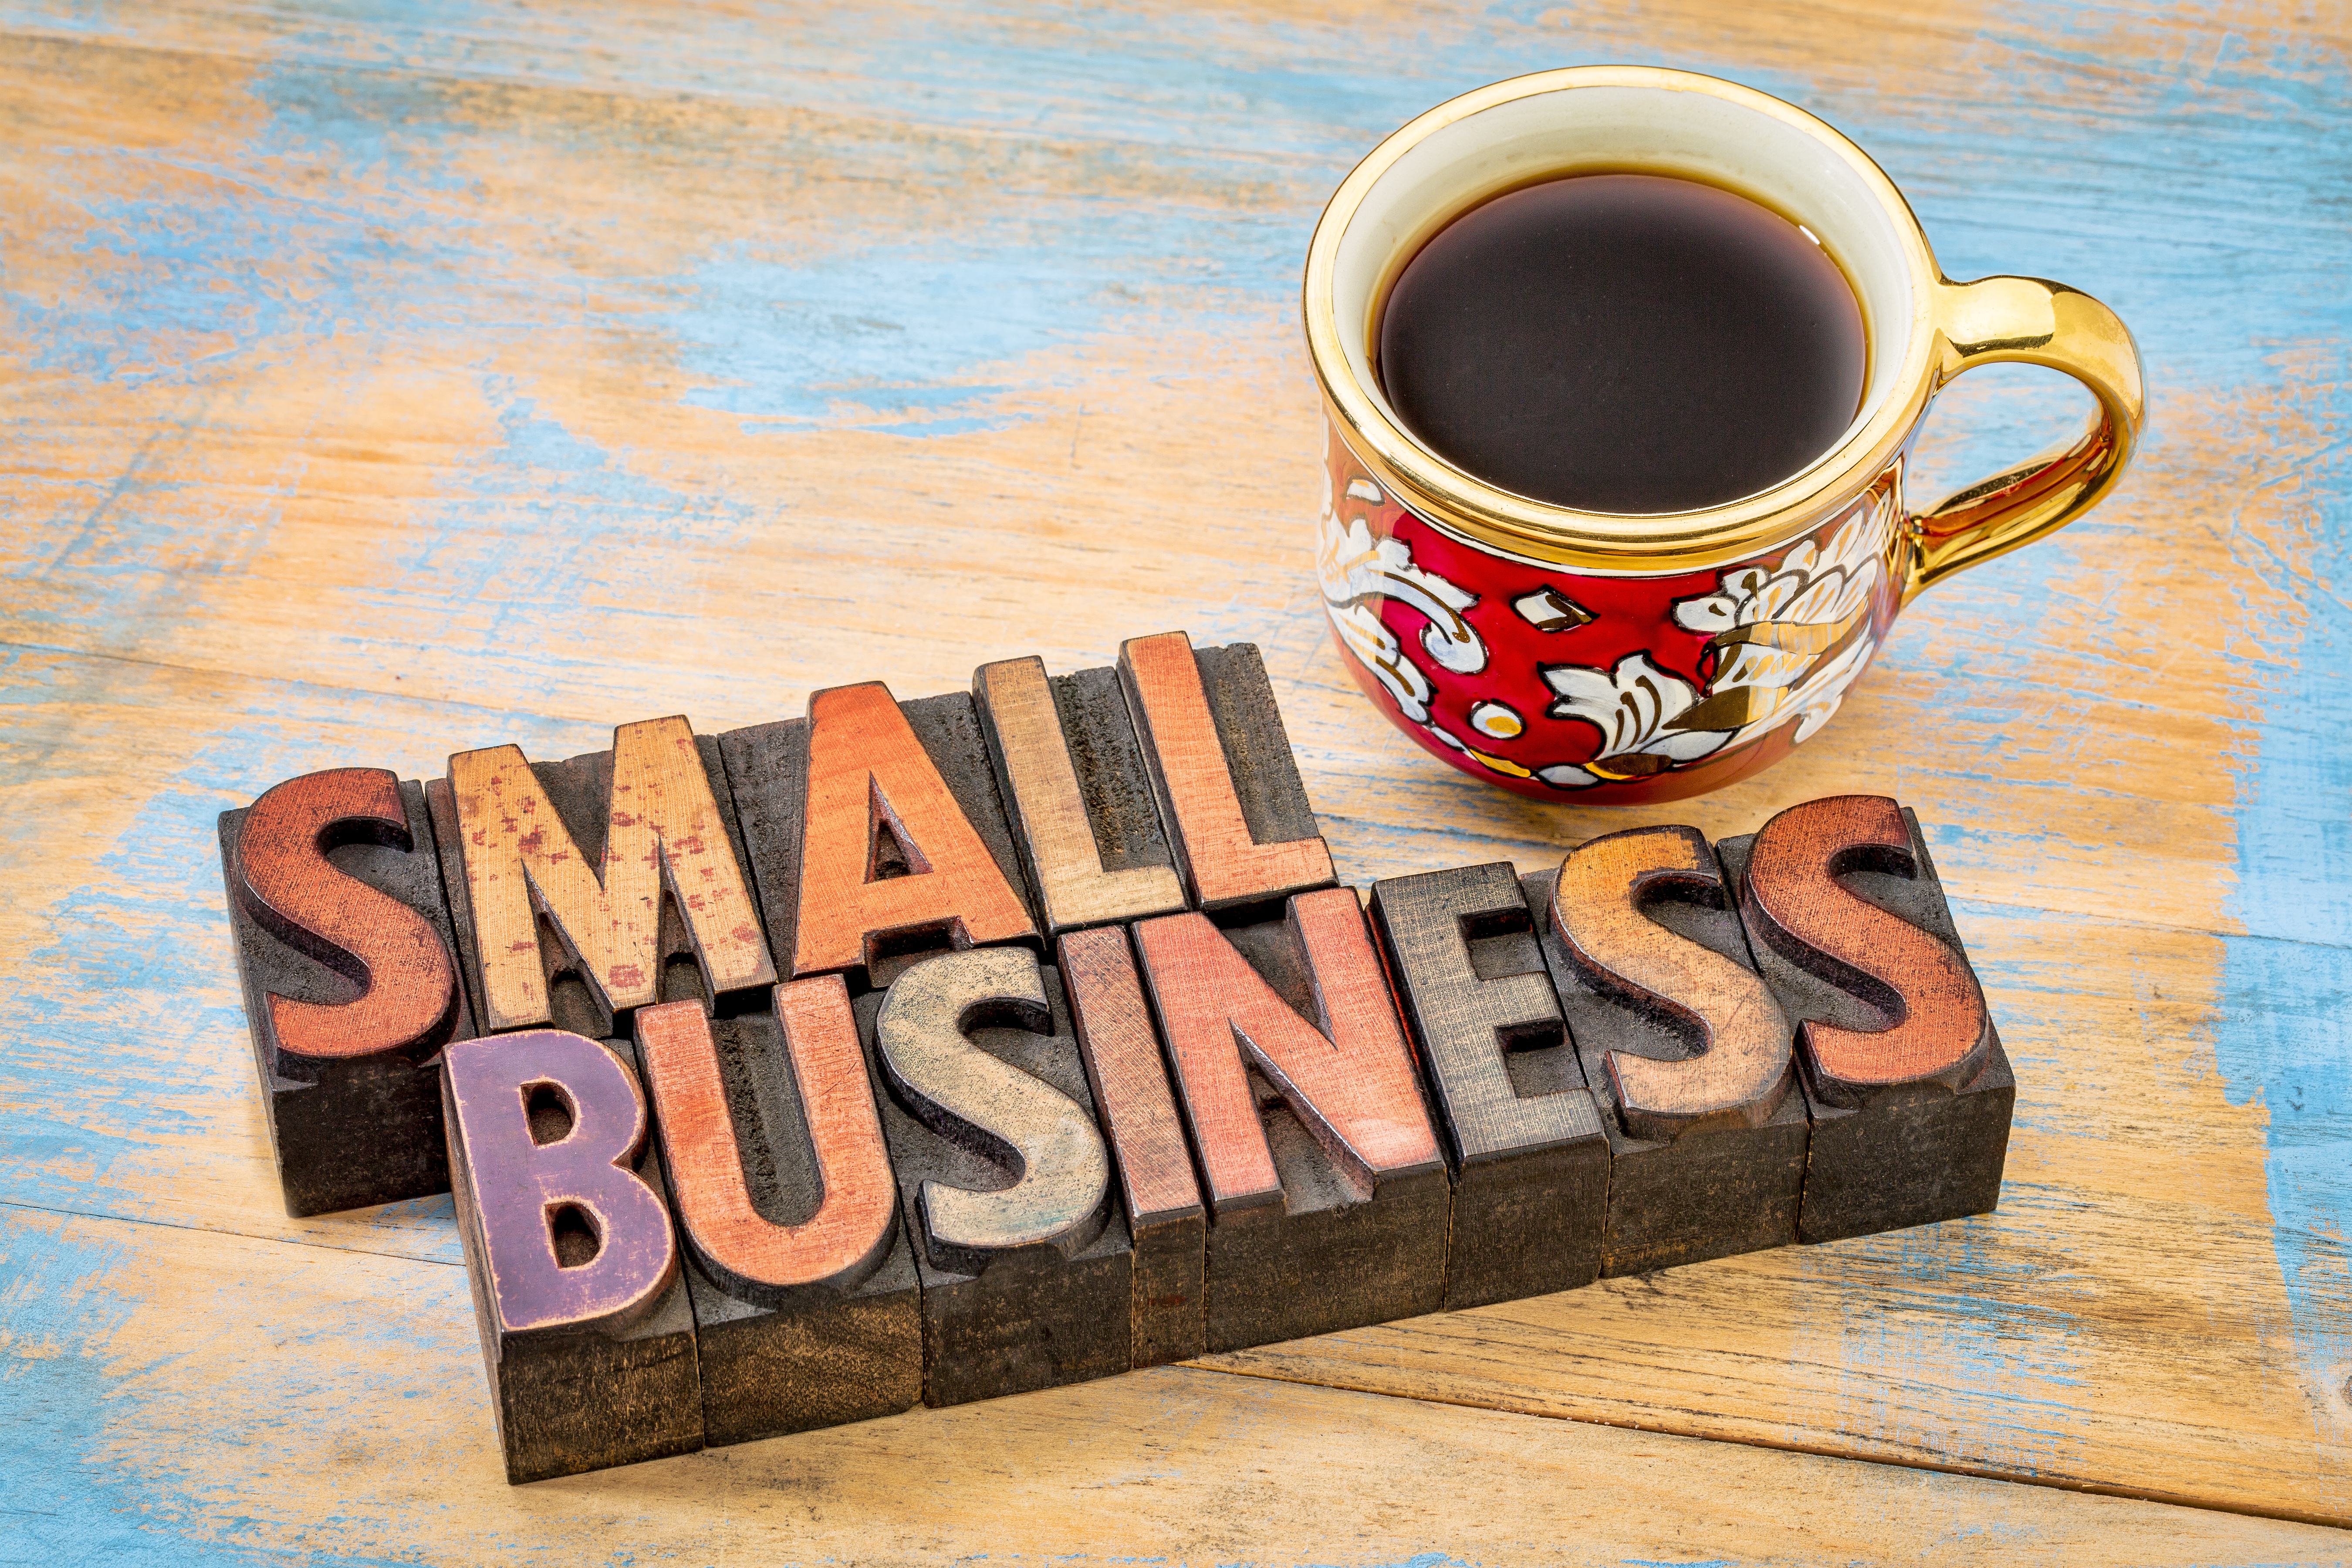 B2B businesses should think smart content on Small Business